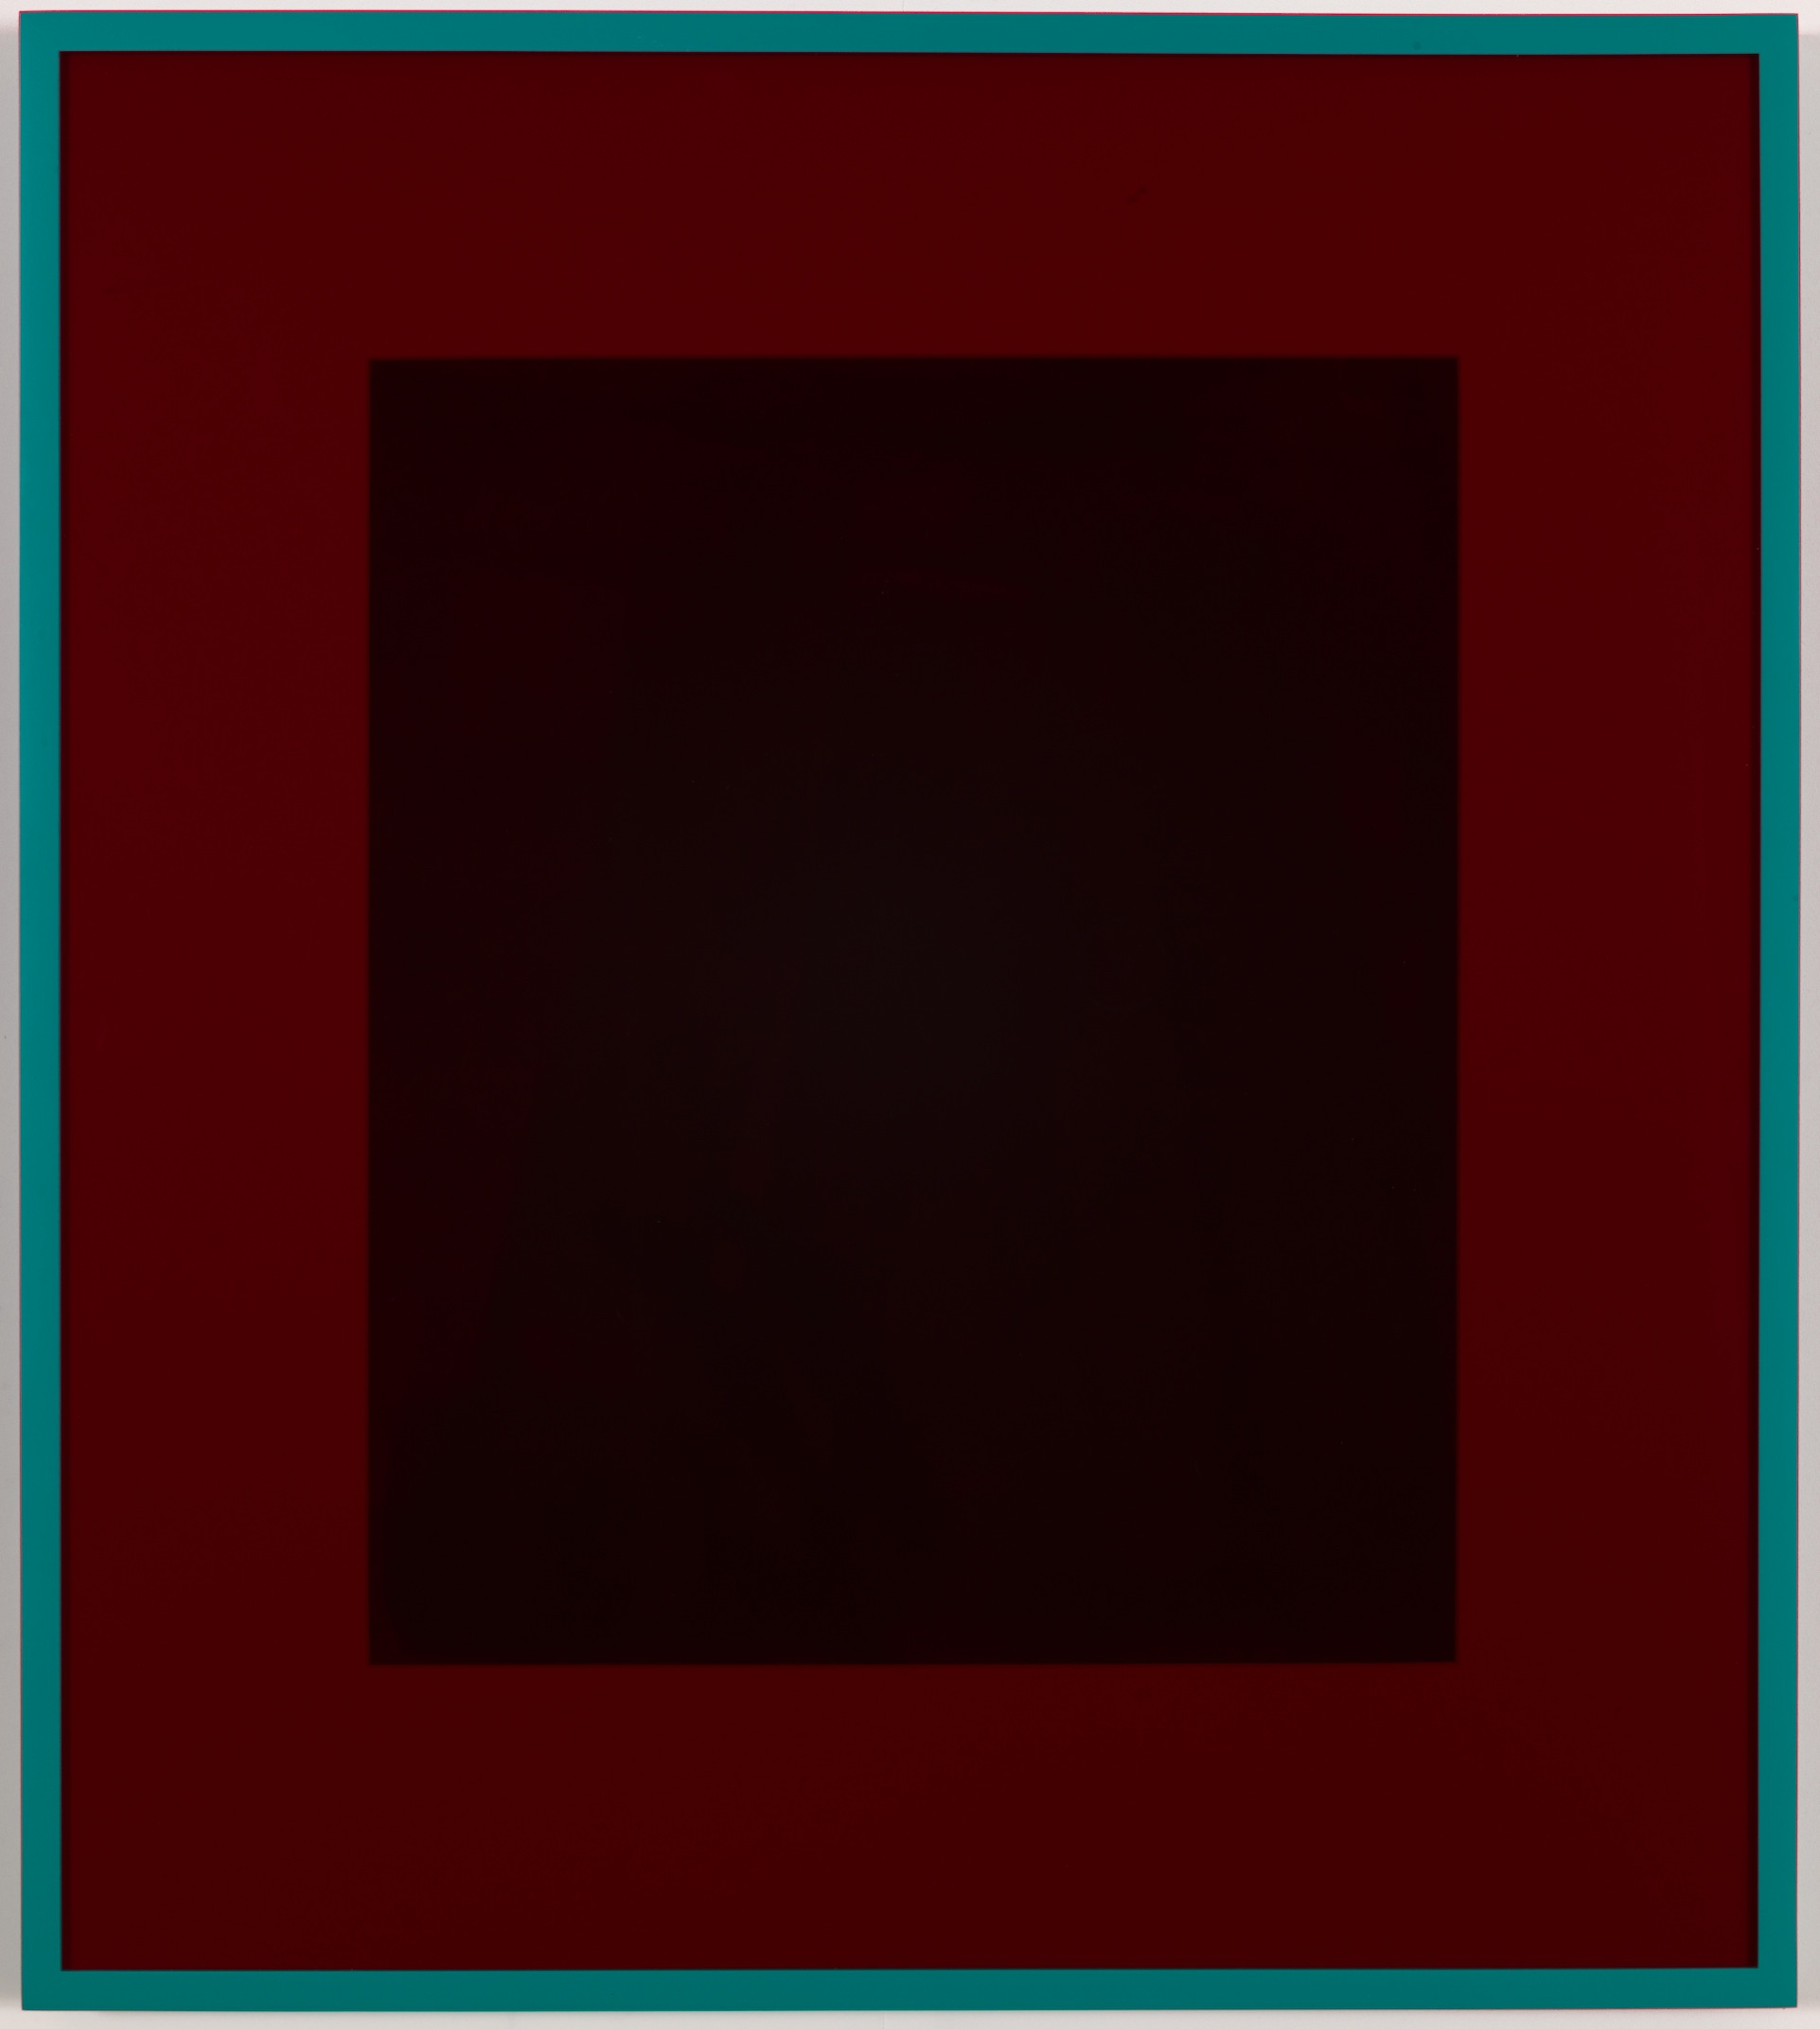 Reverse Telescope (Turquoise) 2013 Acrylic on paper, coloured mat board, coloured perspex, artist's frame  64 x 57.1 cm / 25.2 x 22.5 in